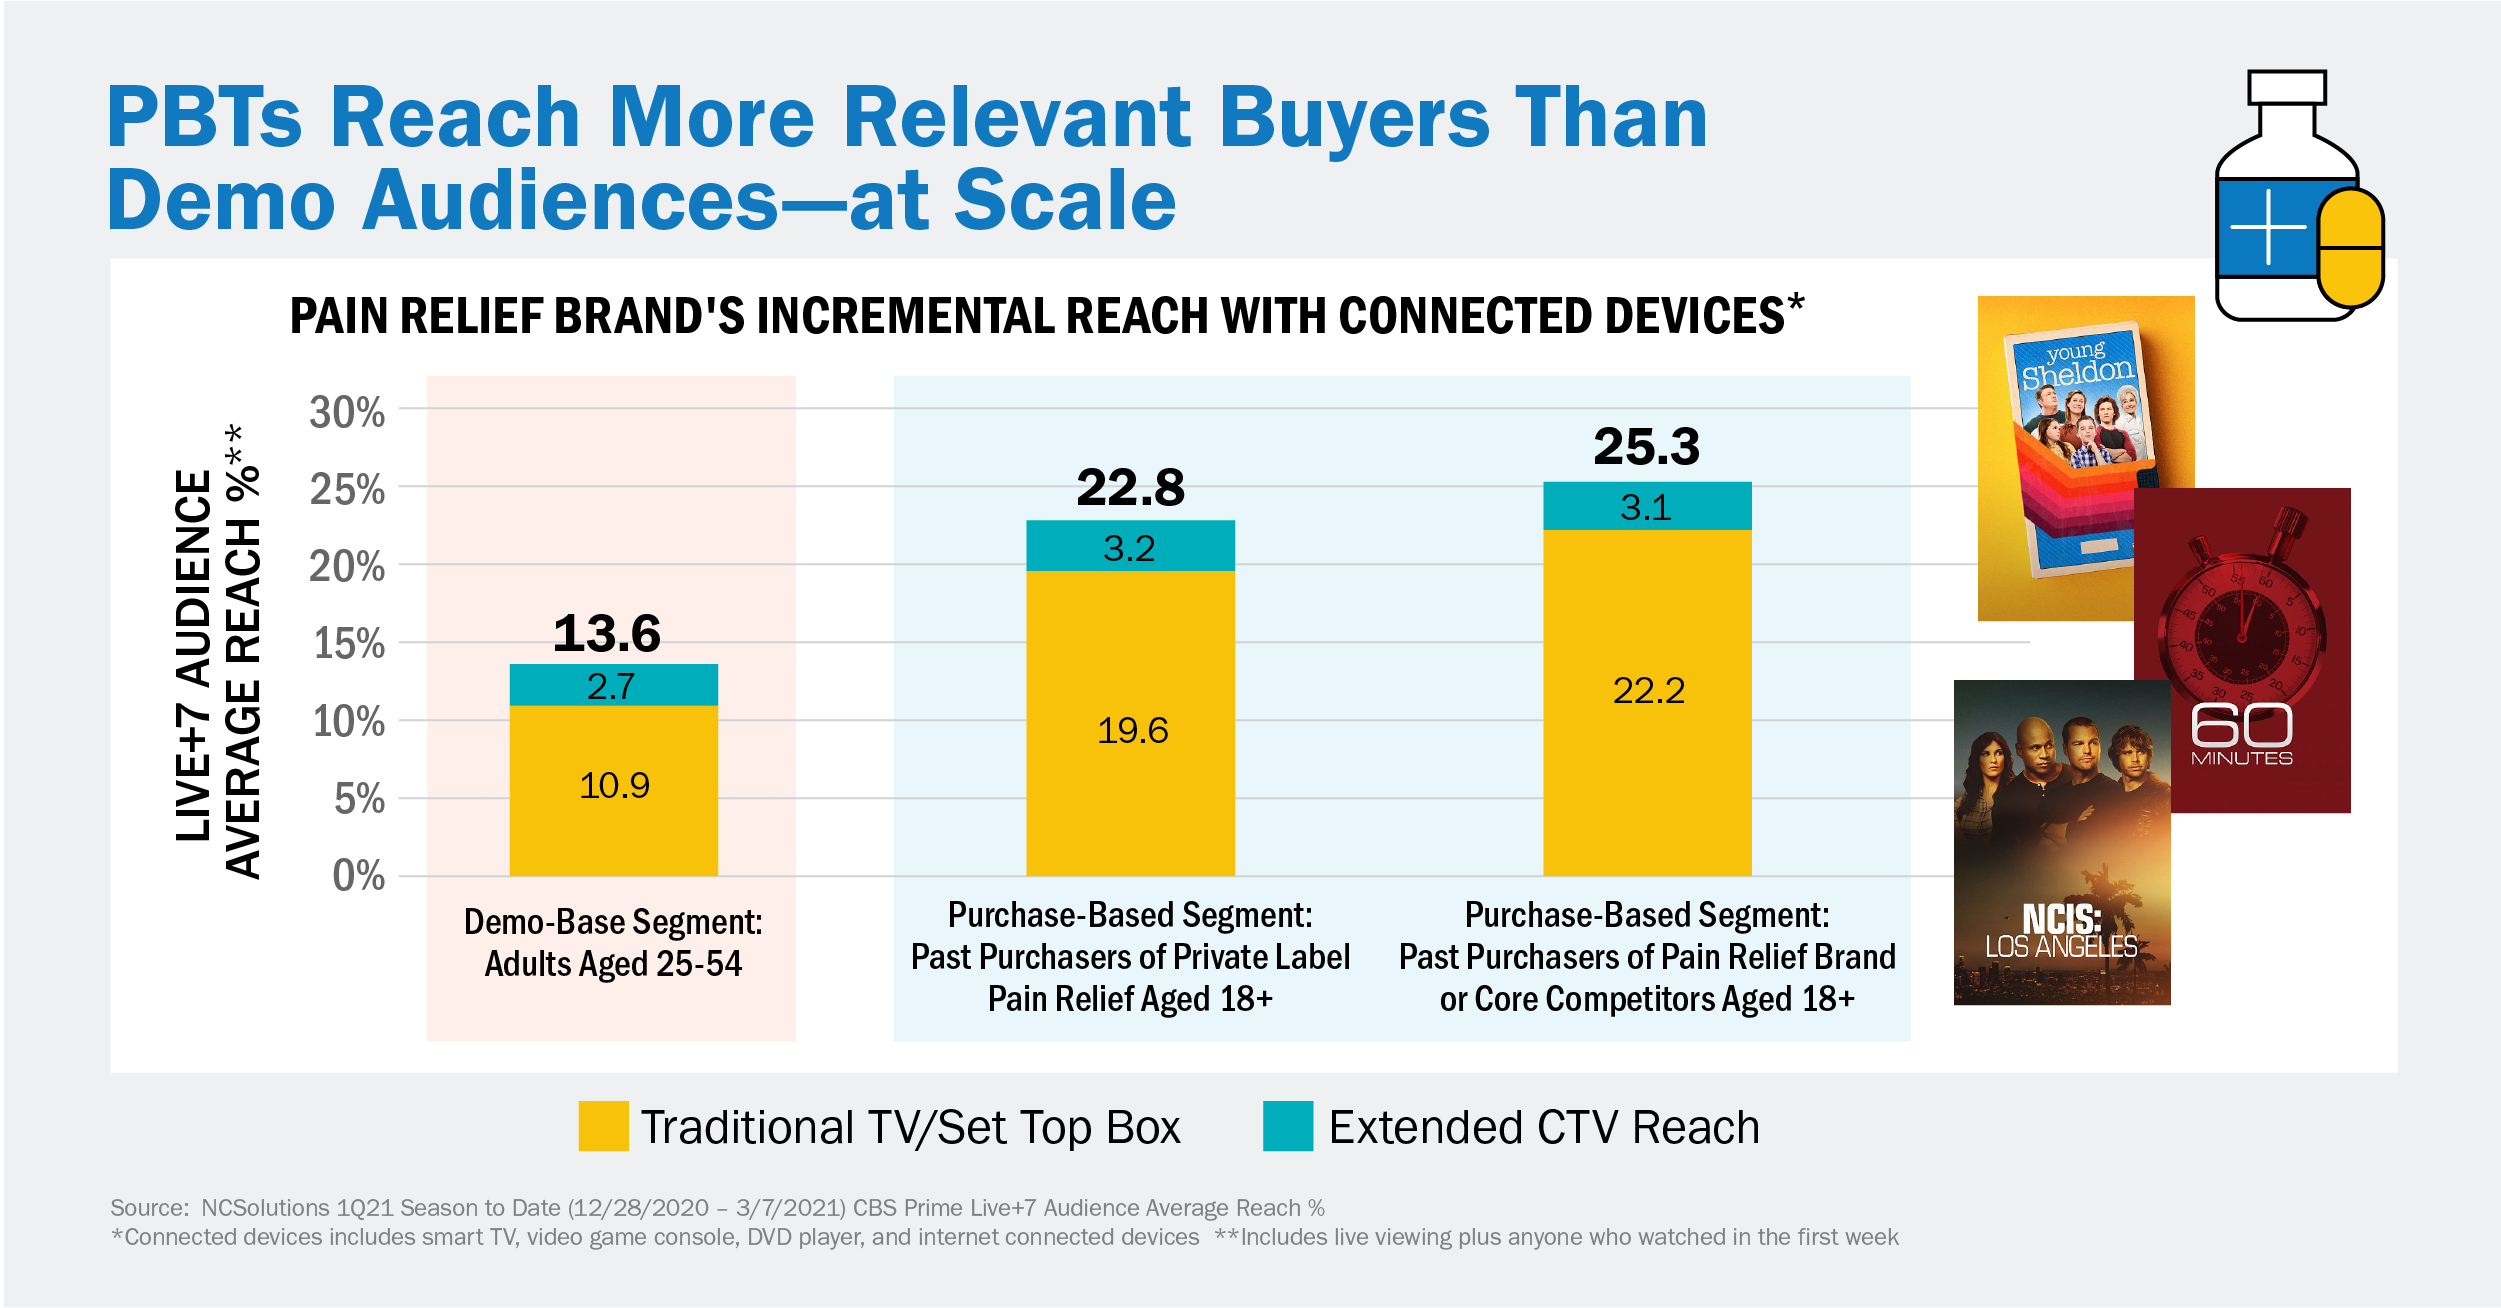 NCS PBTs Reach More Relevant Buyers Than Demo Audiences - at Scale